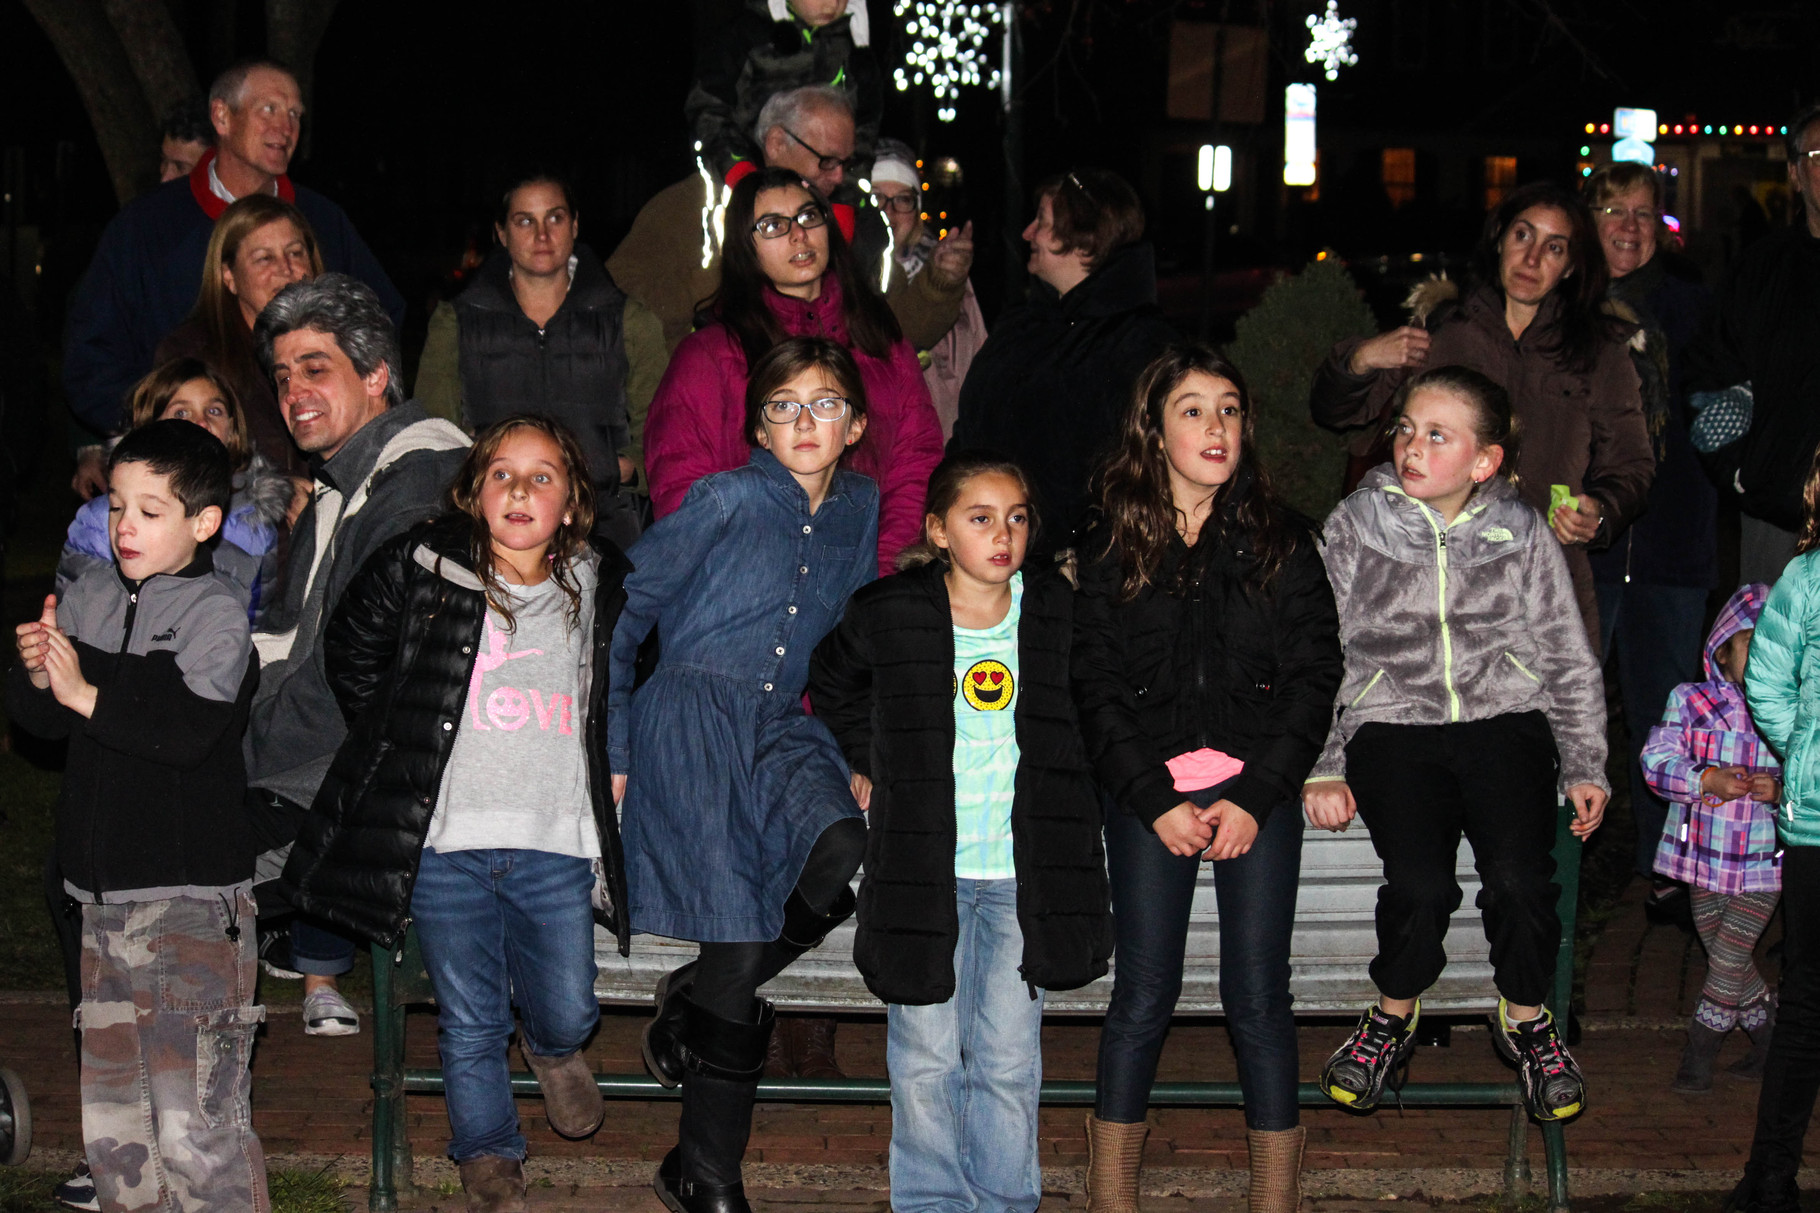 Children await the singing of traditional Hanukkah songs